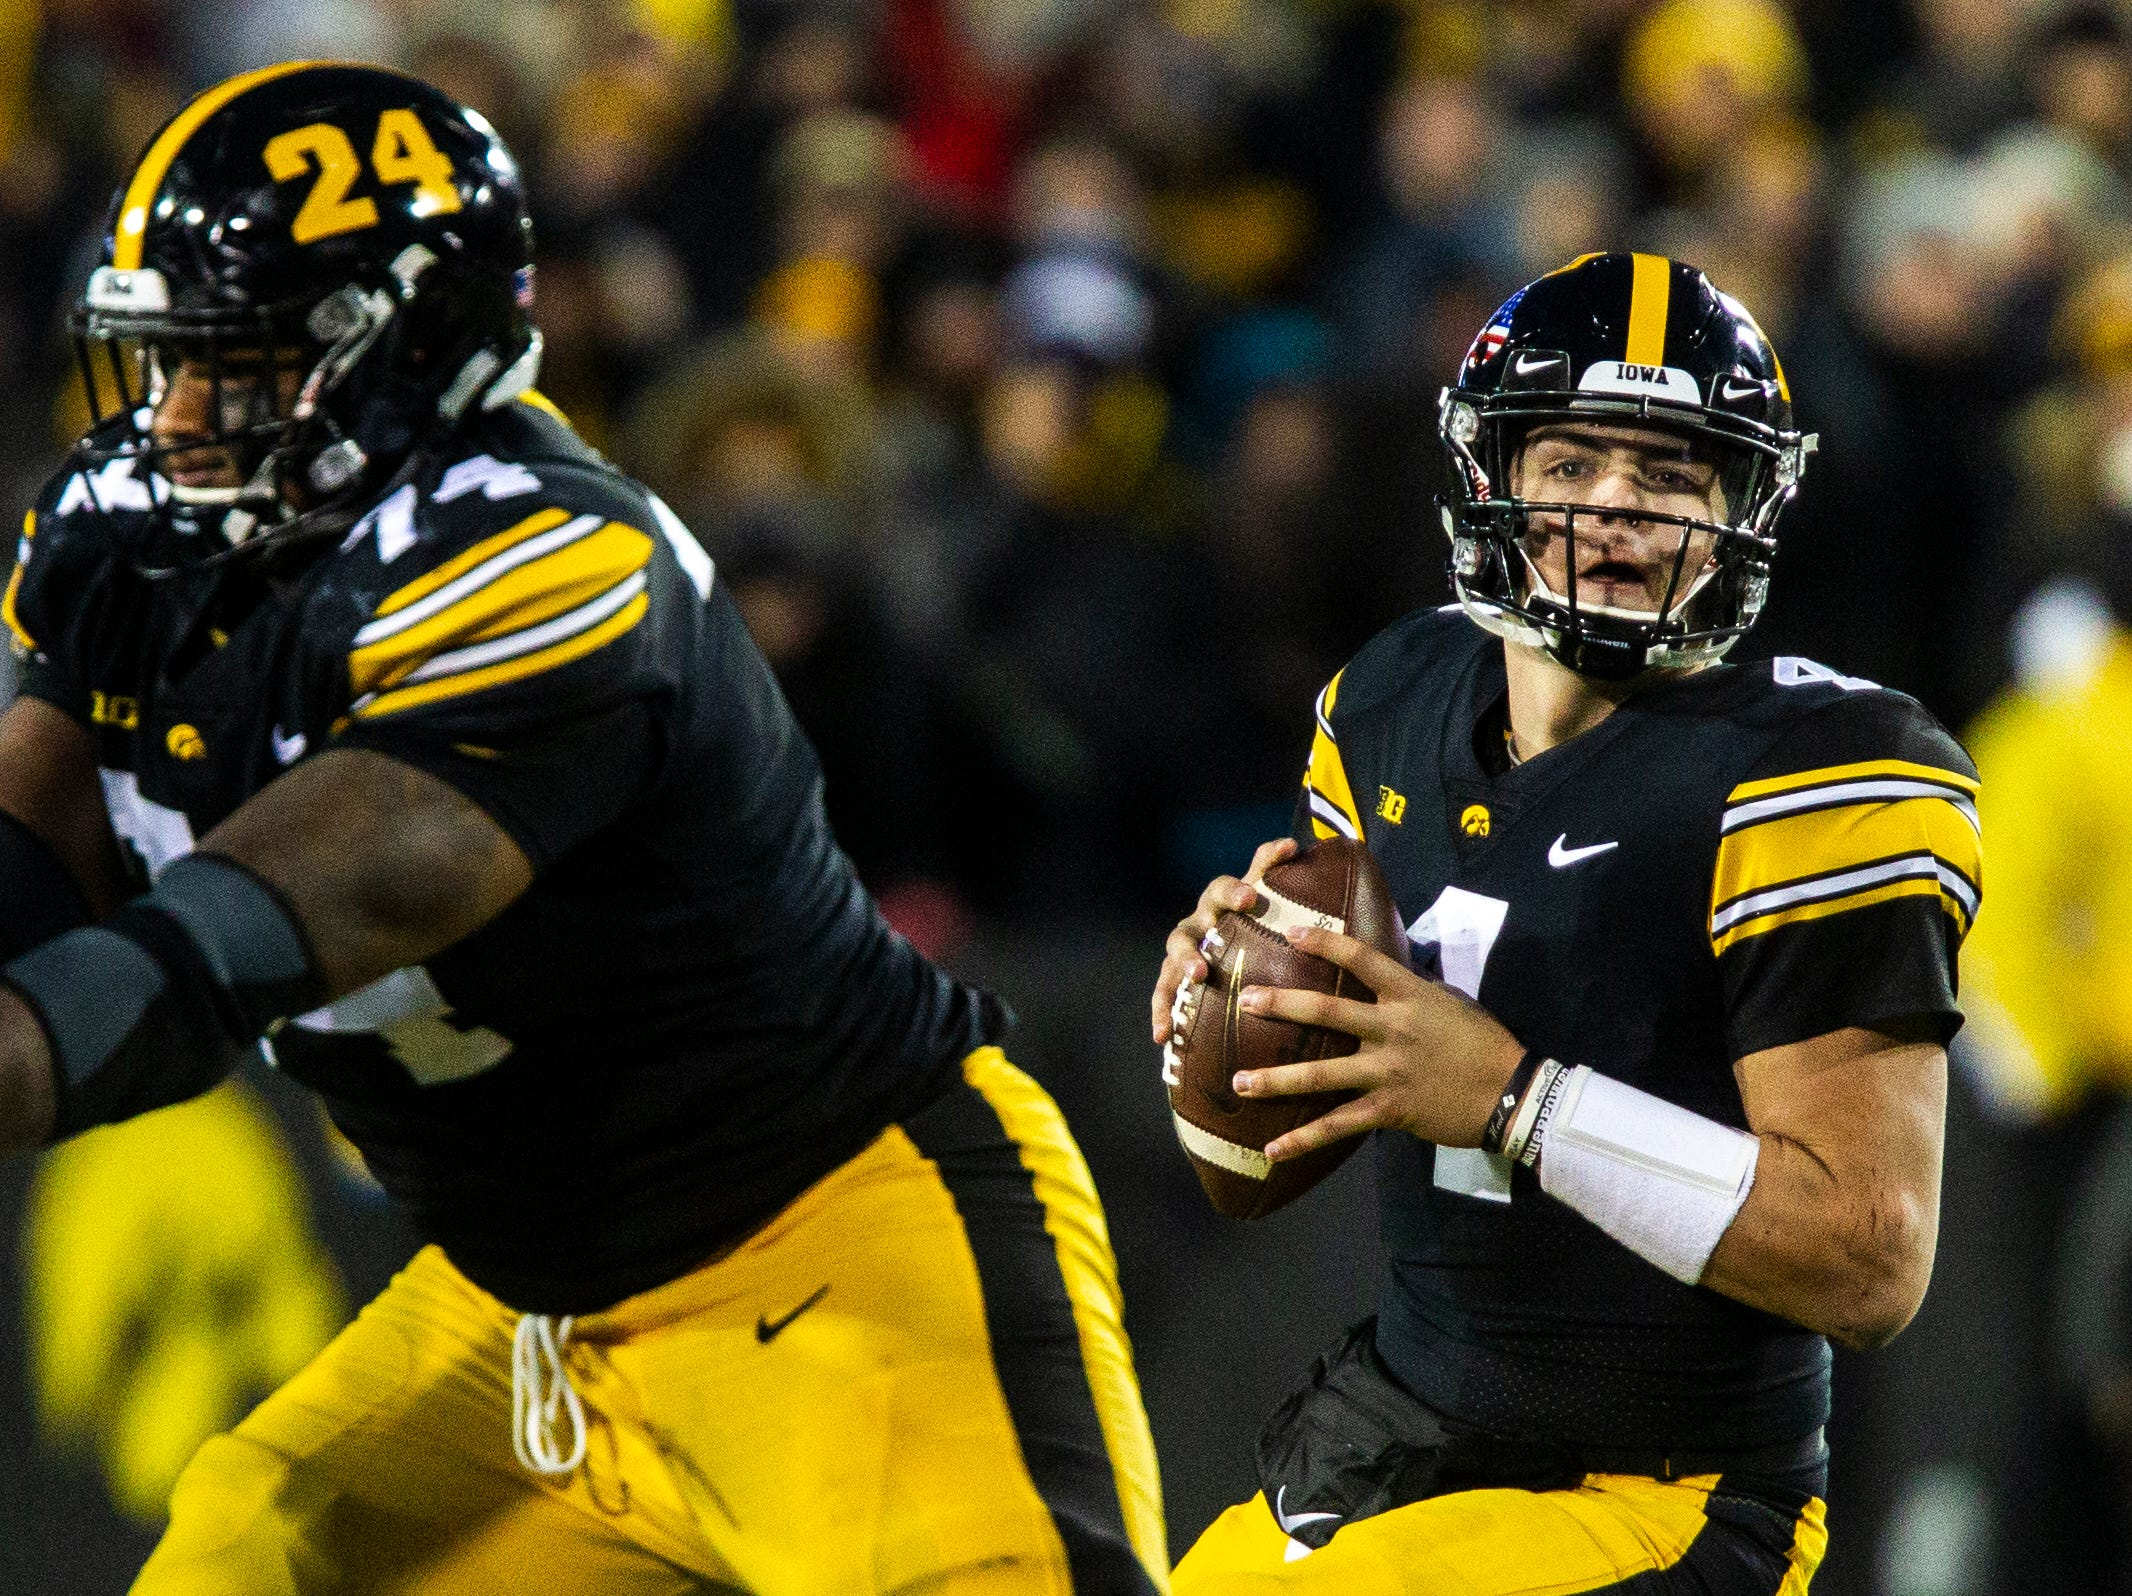 Iowa quarterback Nate Stanley (4) drops back to pass during a Big Ten Conference football game on Saturday, Nov. 10, 2018, at Kinnick Stadium in Iowa City.